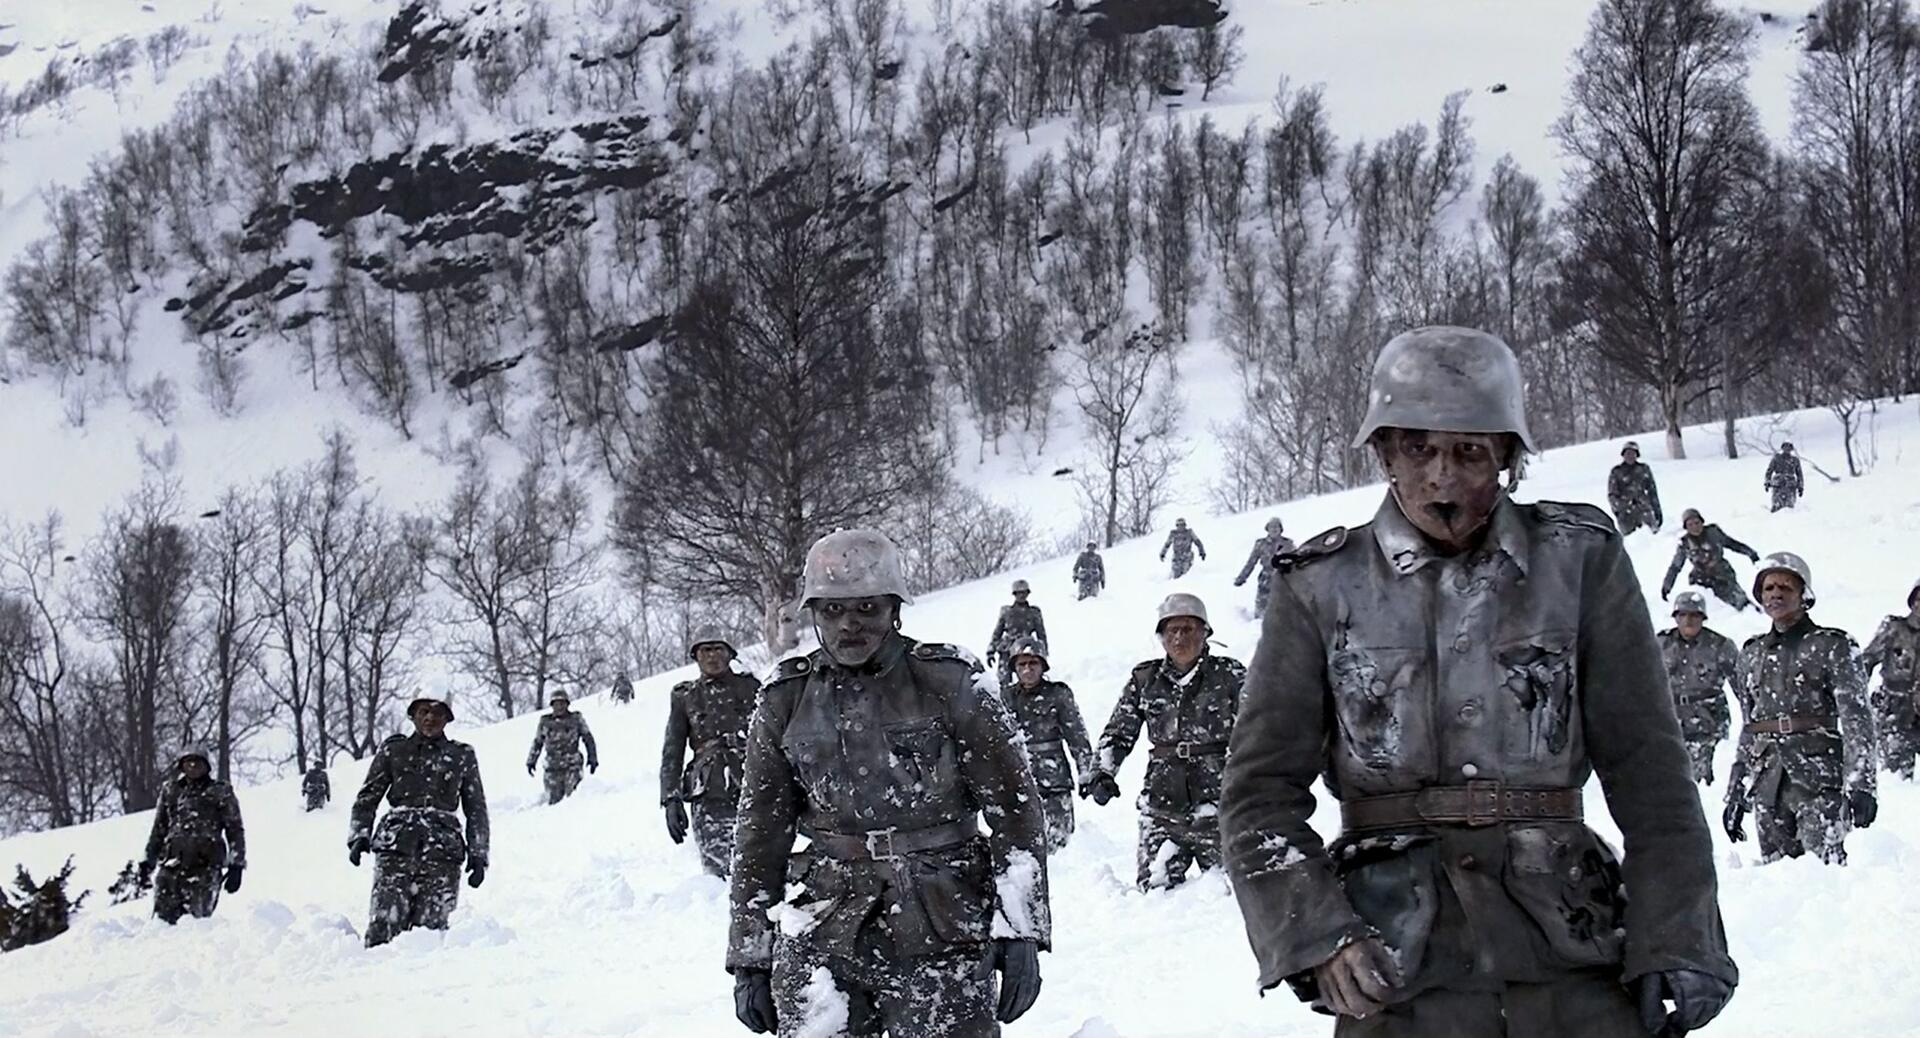 Zombie stormtroopers on the march in Dead Snow (2009)